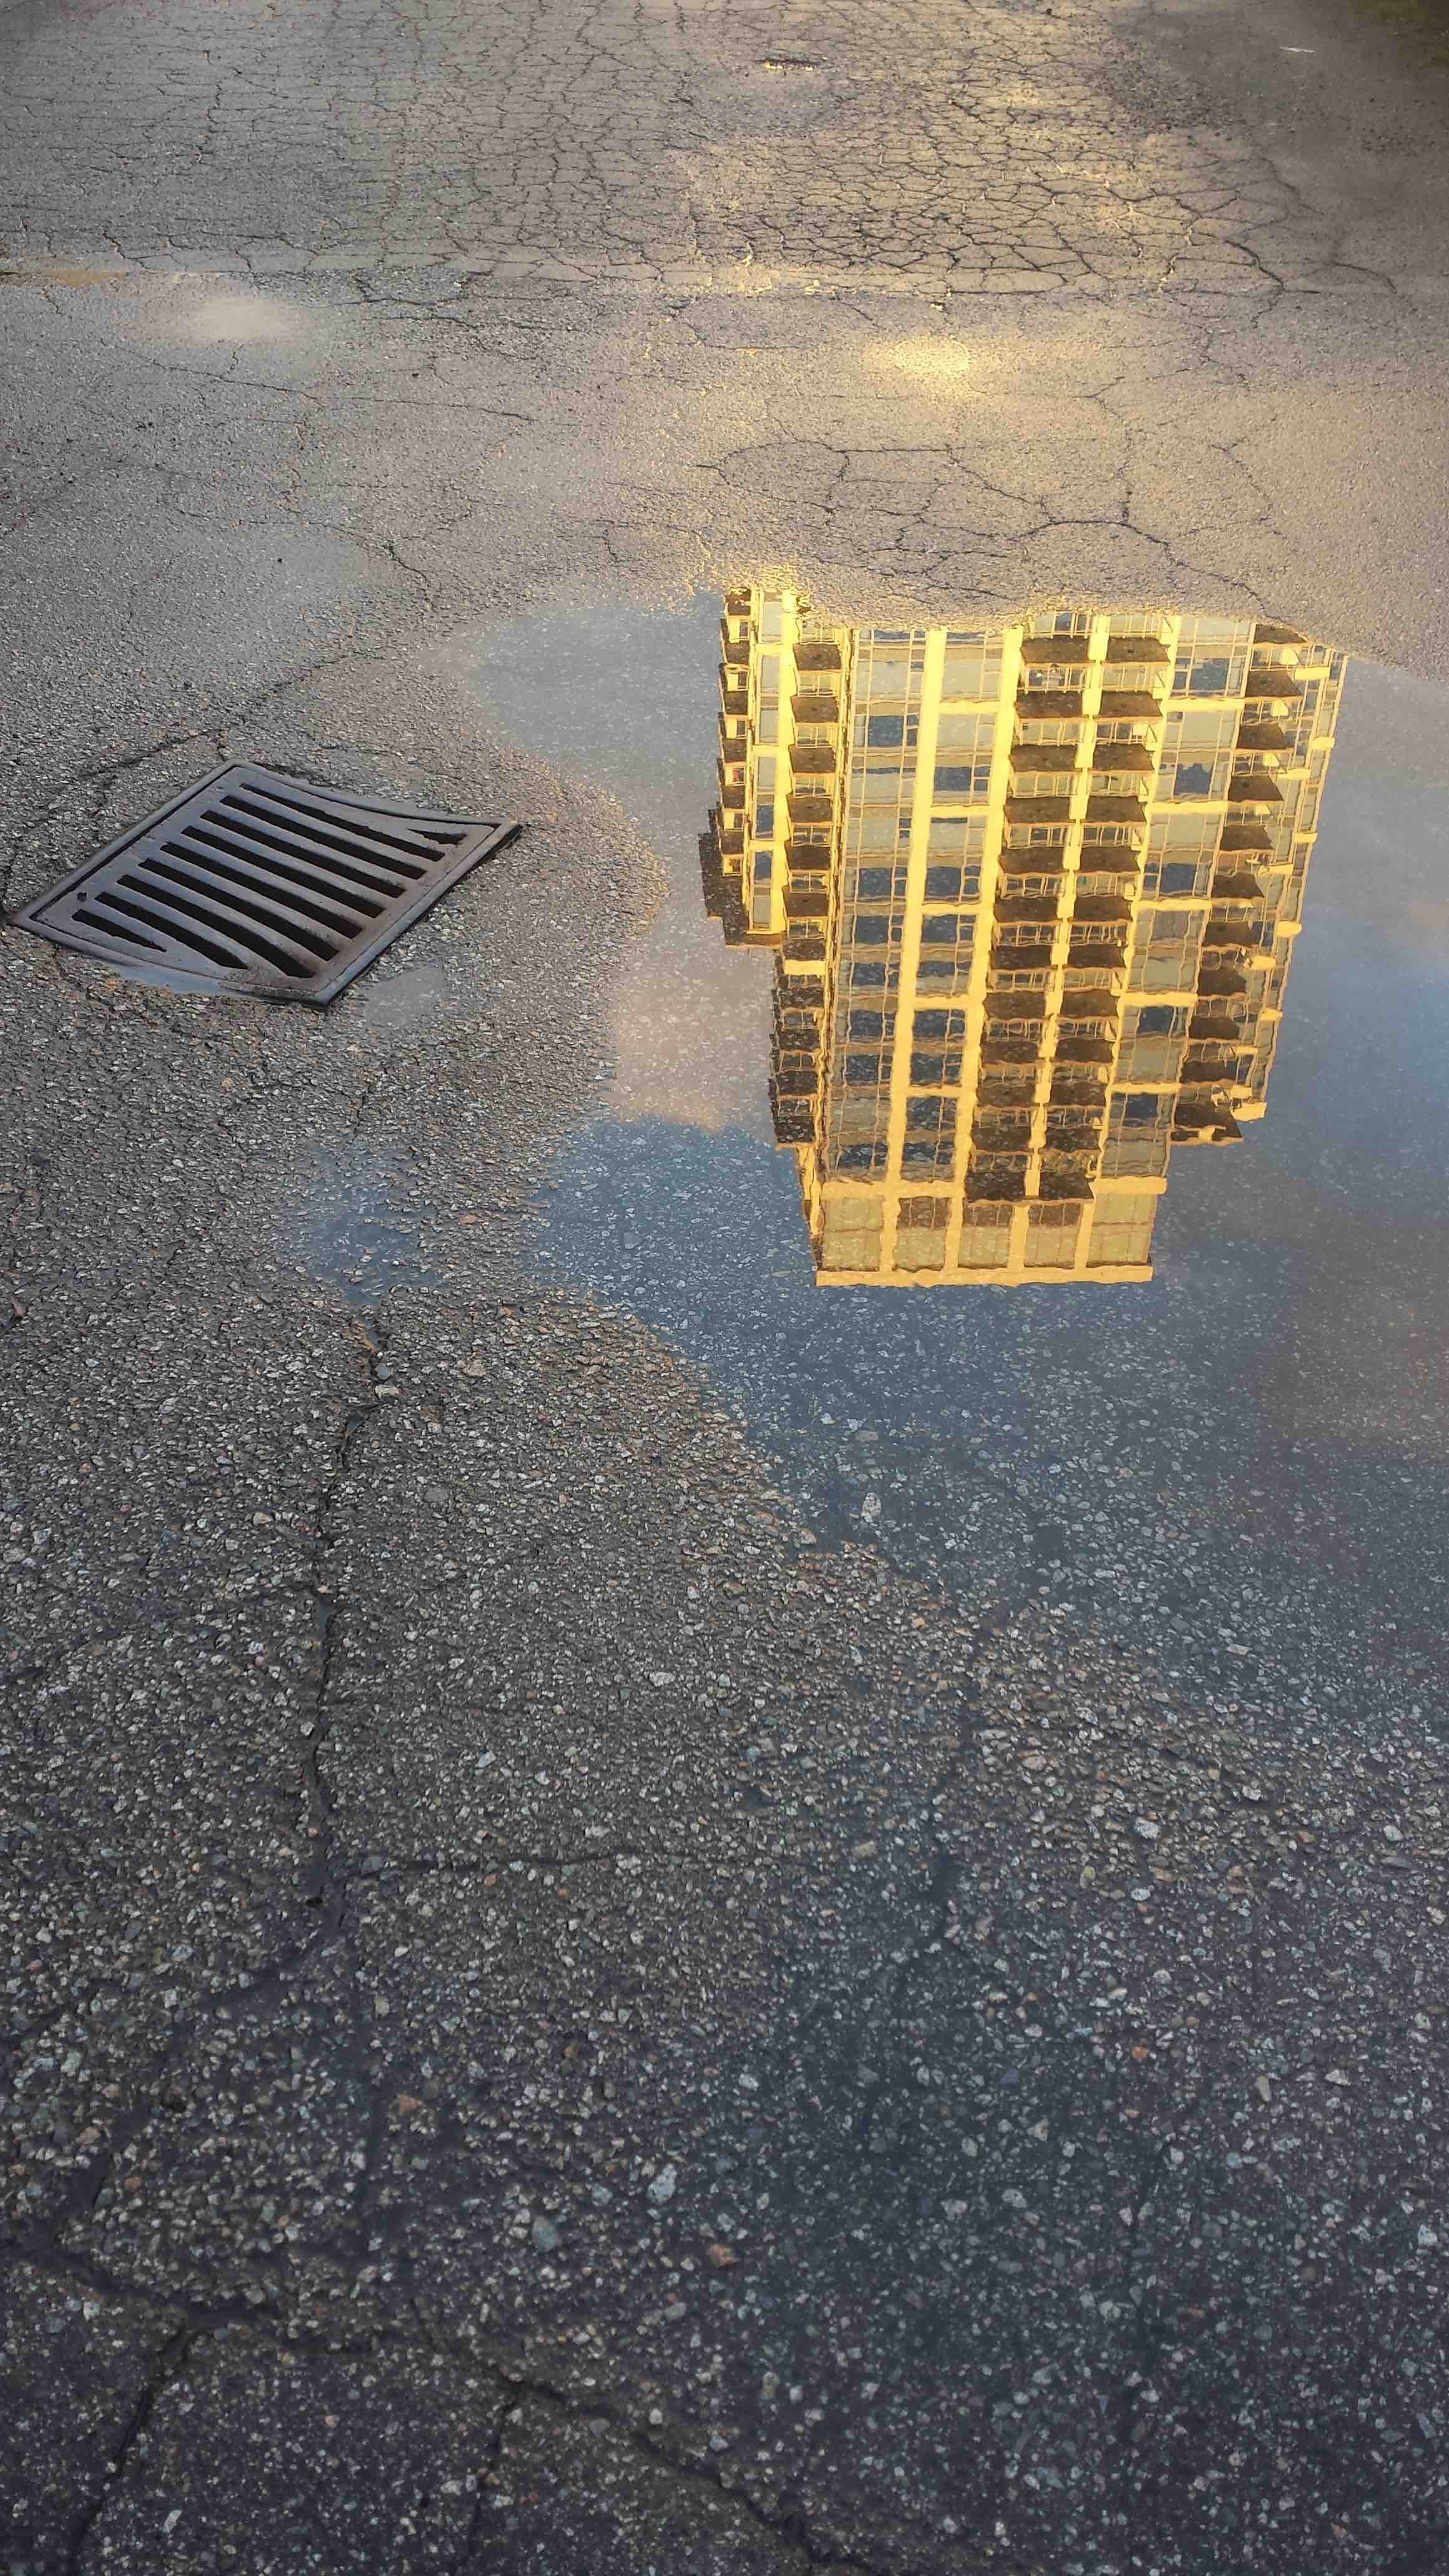 Highrise in puddle